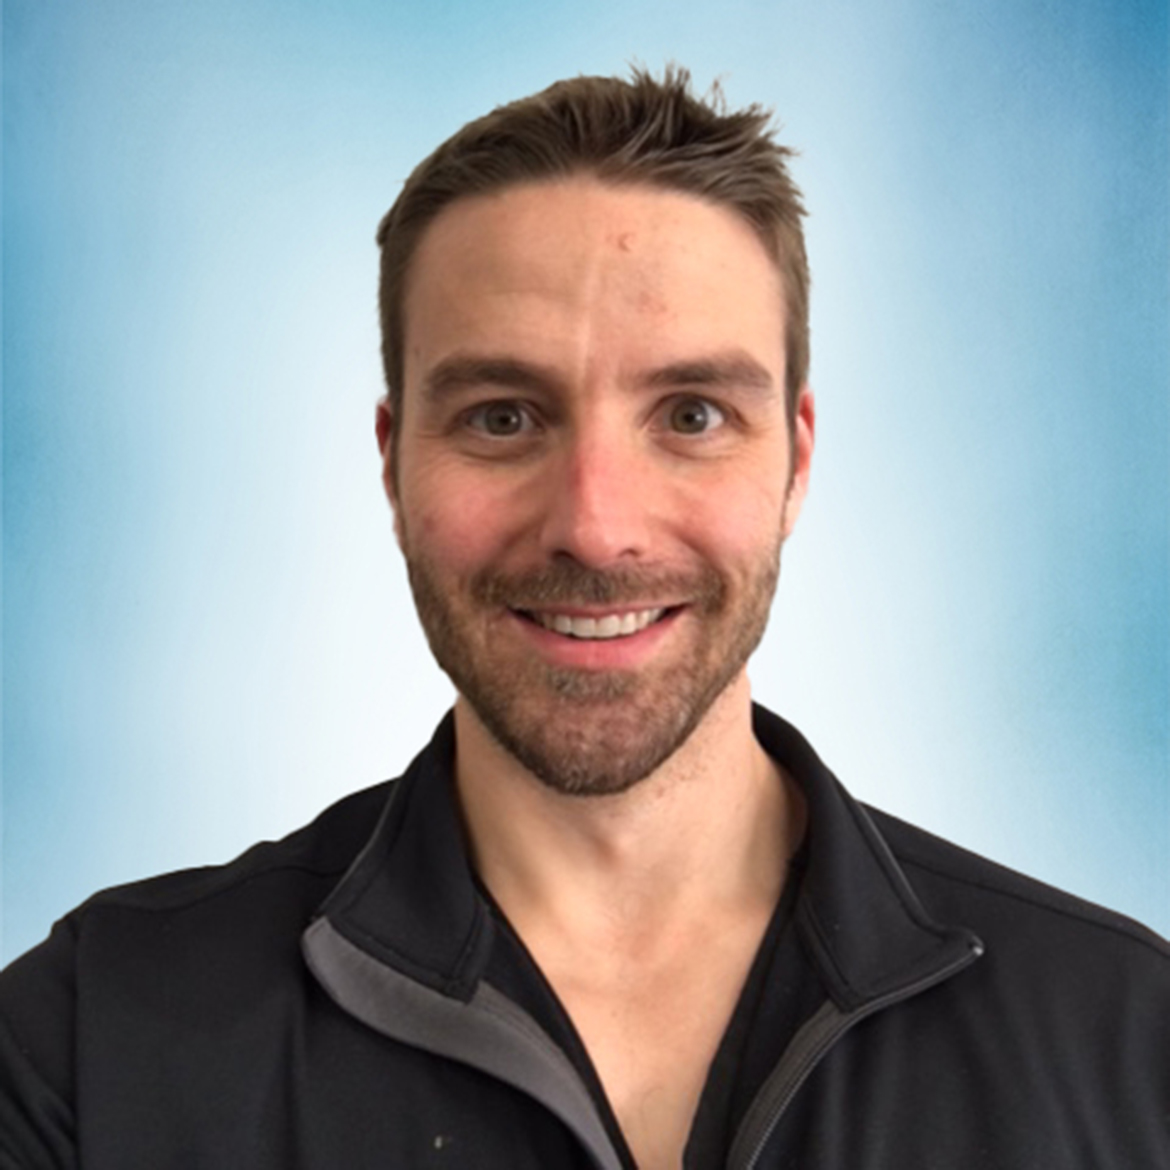 Headshot of Matthew Nall, PT, DPT, CSCS.